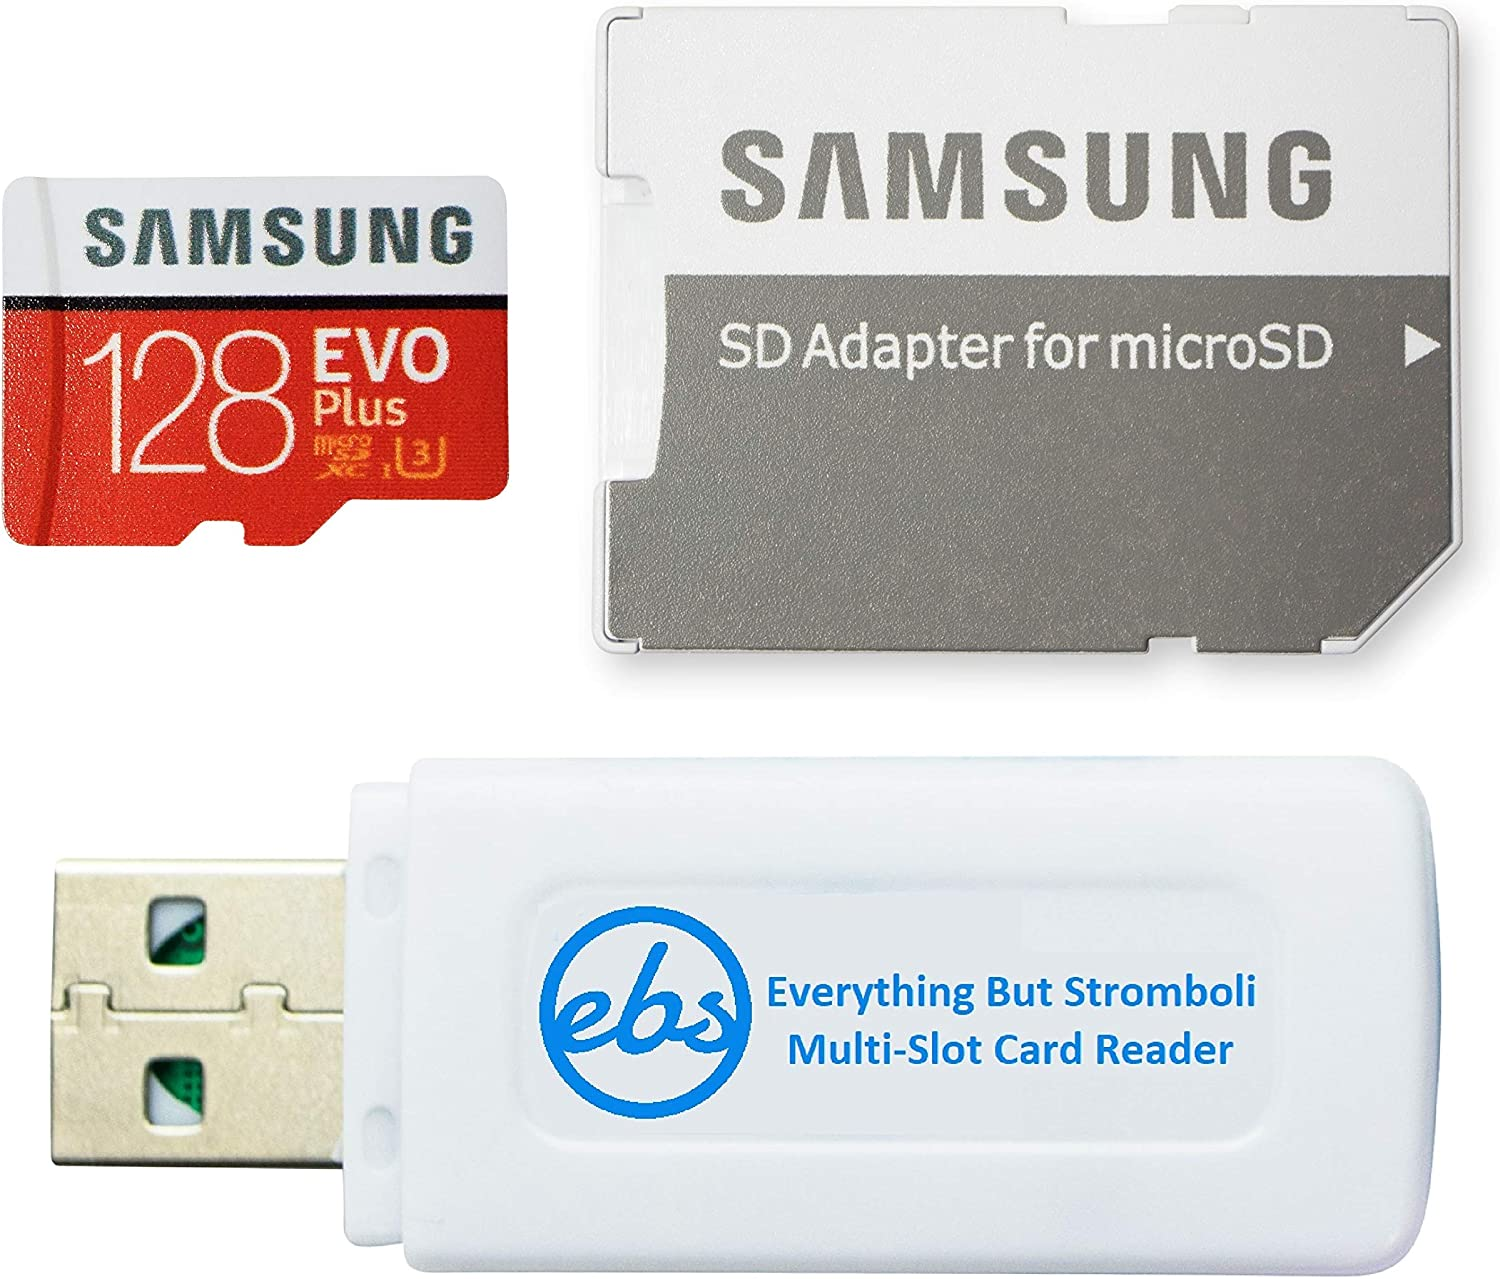 Samsung Micro 128GB Evo Plus Memory Card Class 10 Works with Android Phone - Galaxy A20s, A20, A10, A70 (MB-MC128HA) Bundle with (1) Everything But Stromboli MicroSD & SD Card Reader